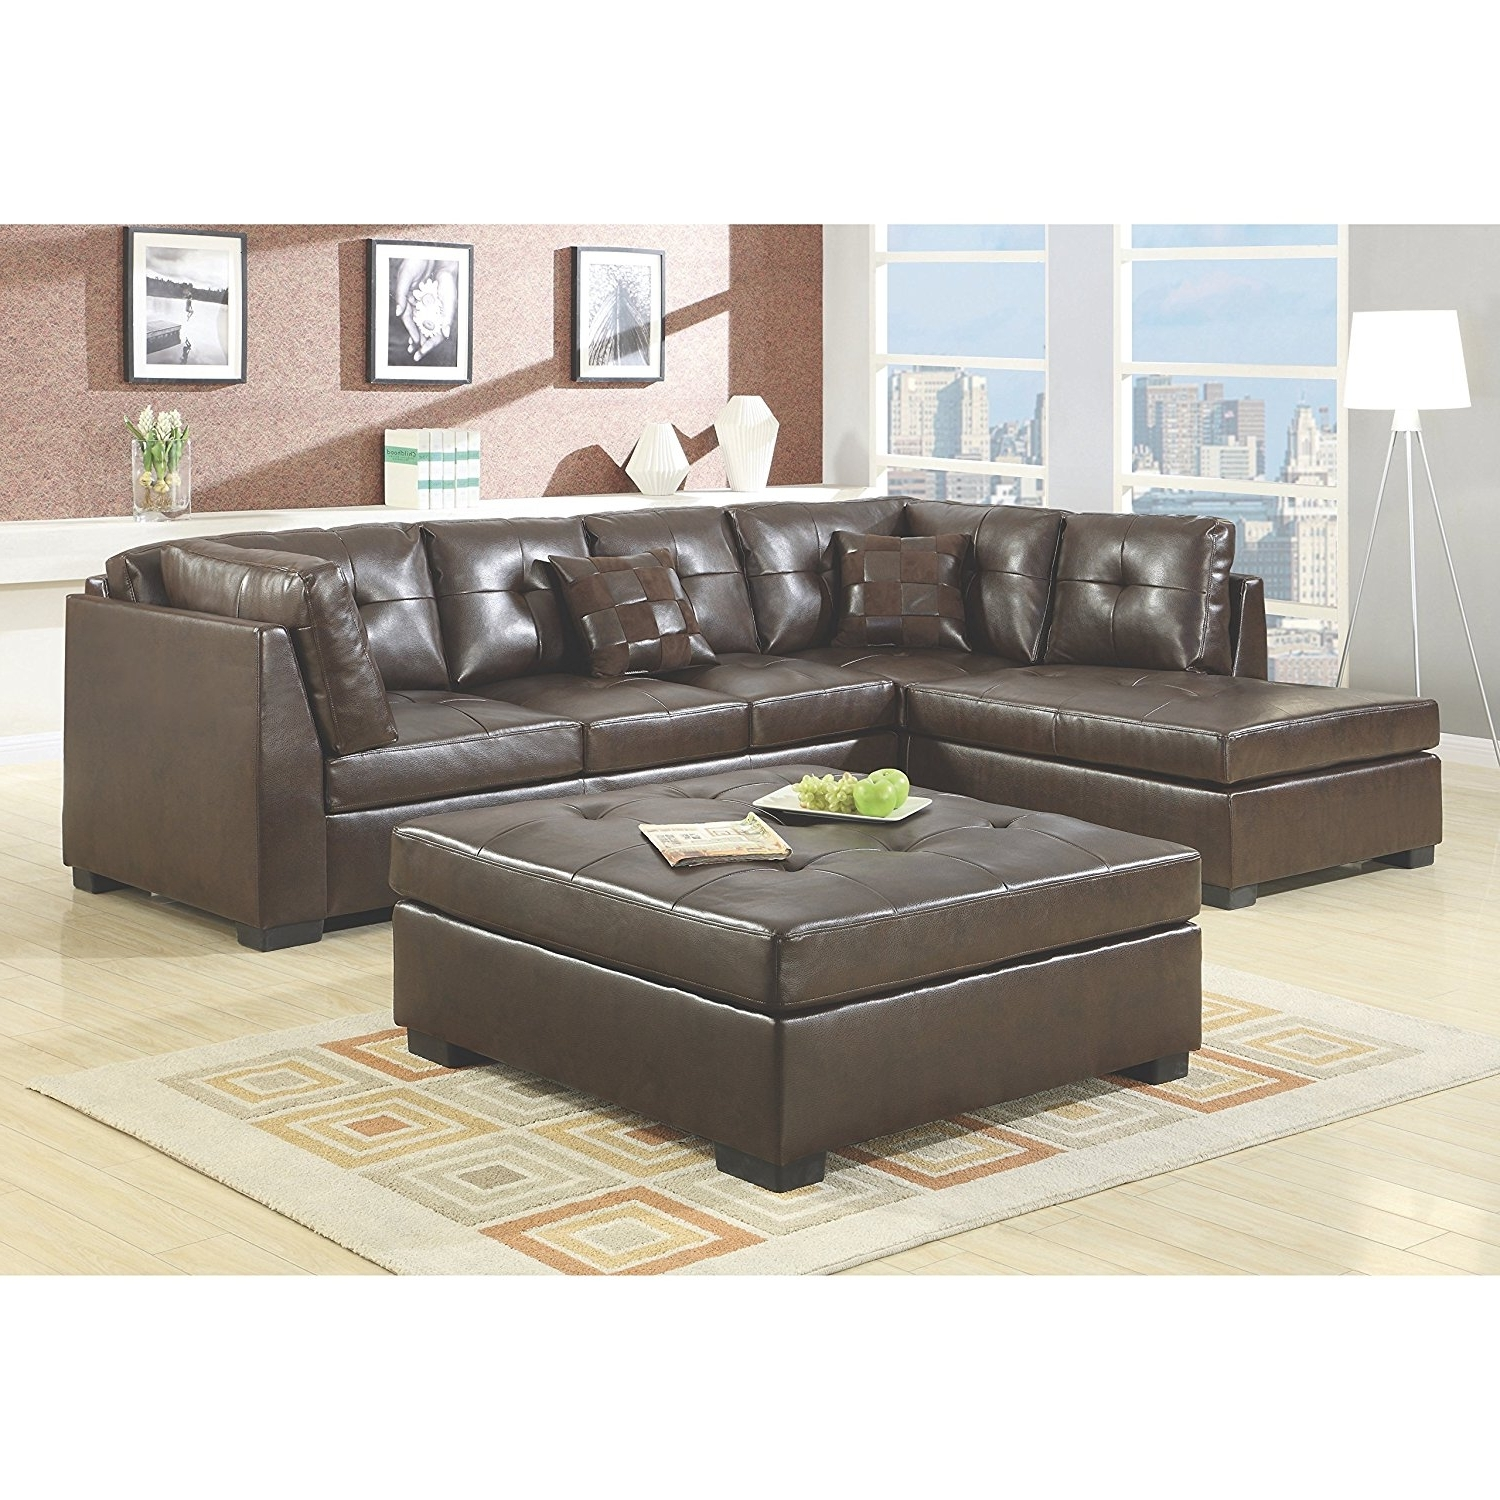 Amazon: Coaster Home Furnishings 500686 Casual Sectional Sofa Pertaining To Favorite Leather Sectionals With Chaise And Ottoman (View 2 of 15)